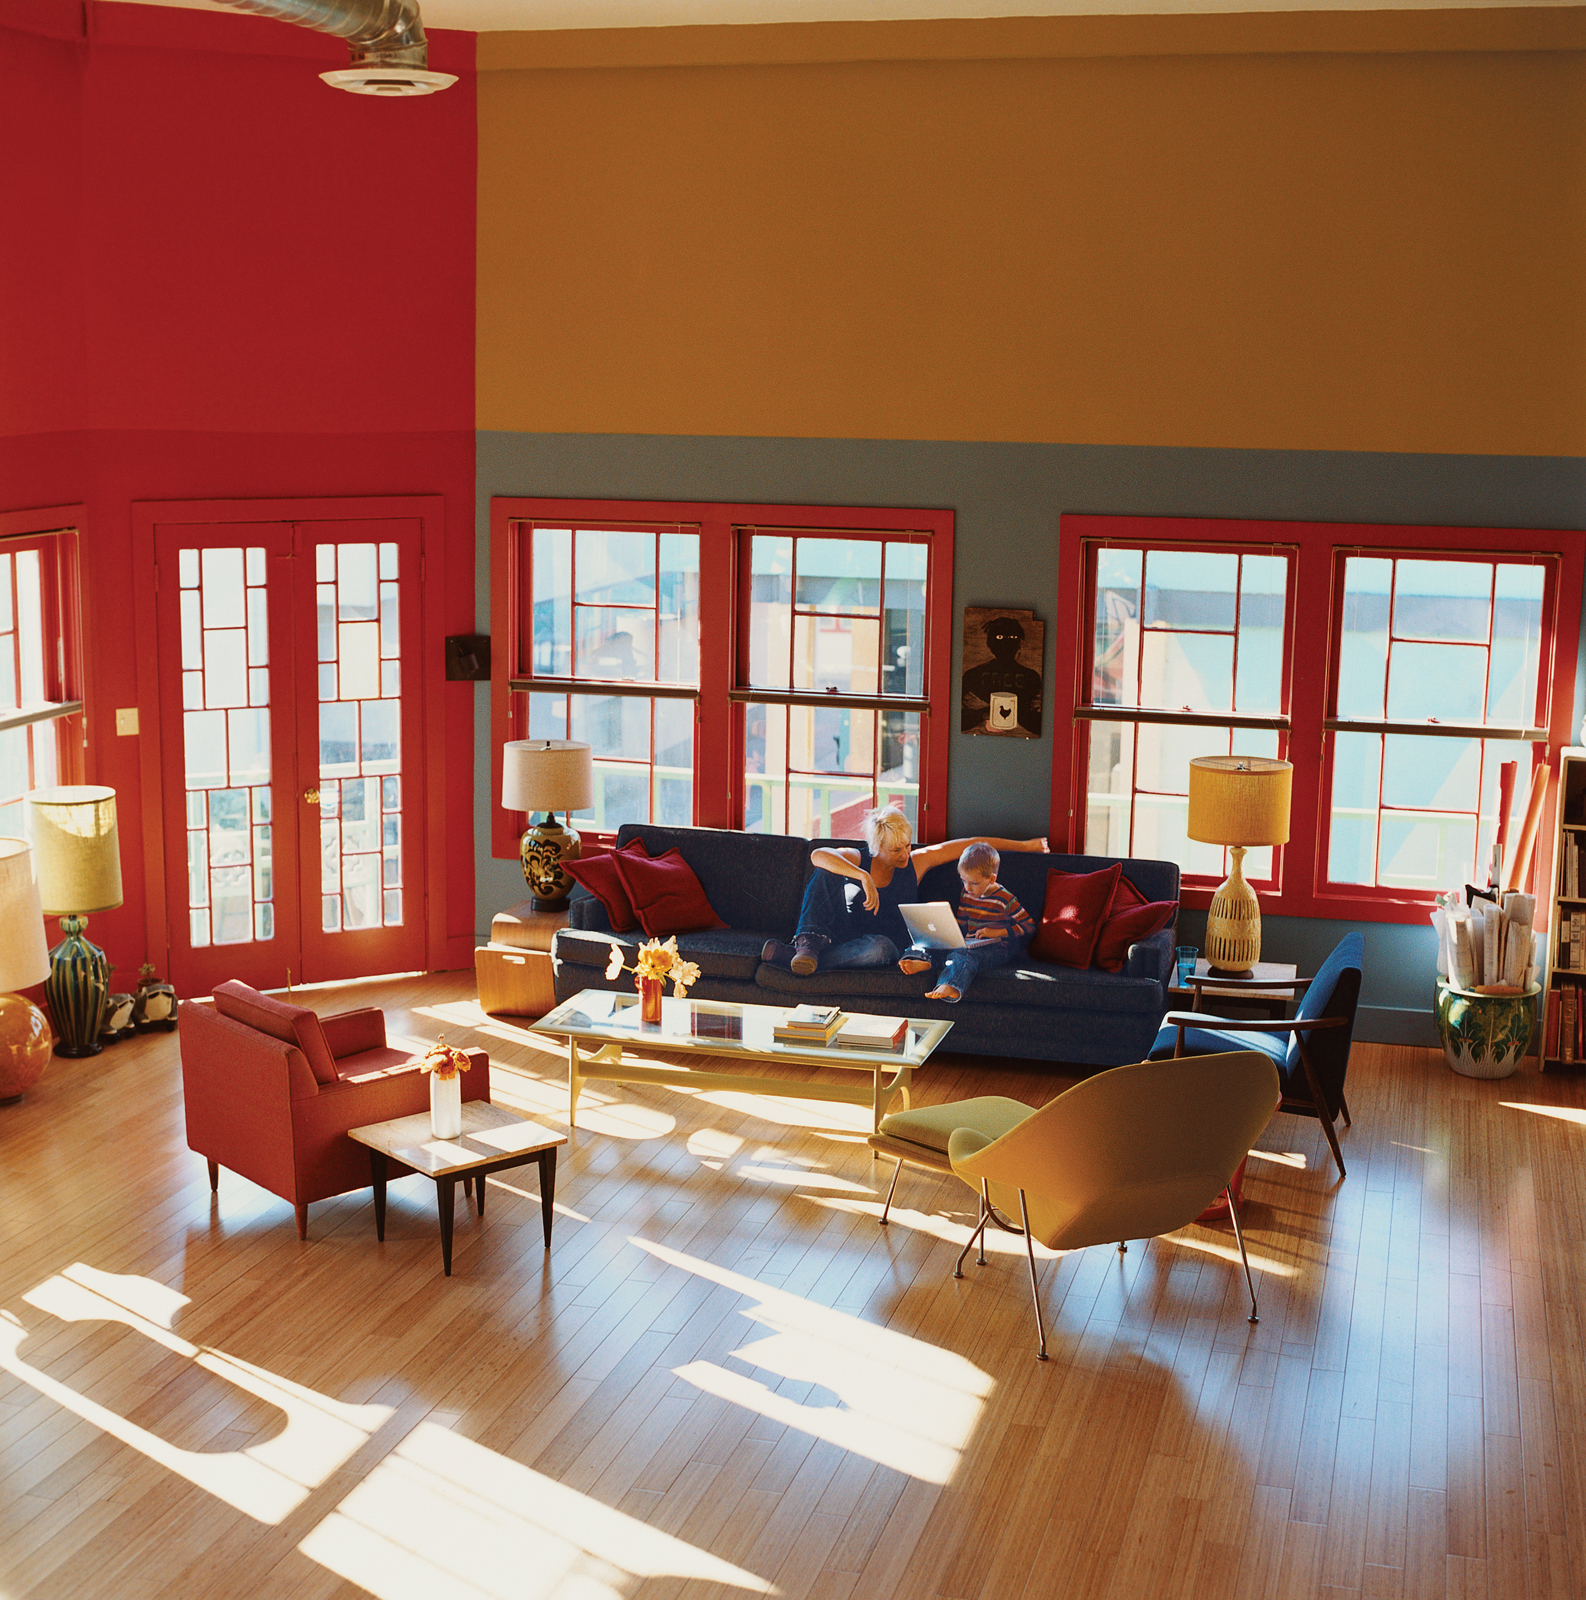 """Sunlight streams through formerly boarded-up windows in the living area that was once Madame Wong's stage. """"When we took off the drywall, we realized there were windows in there. So we had more made to match these four,"""" says Dan. The new windows open up"""